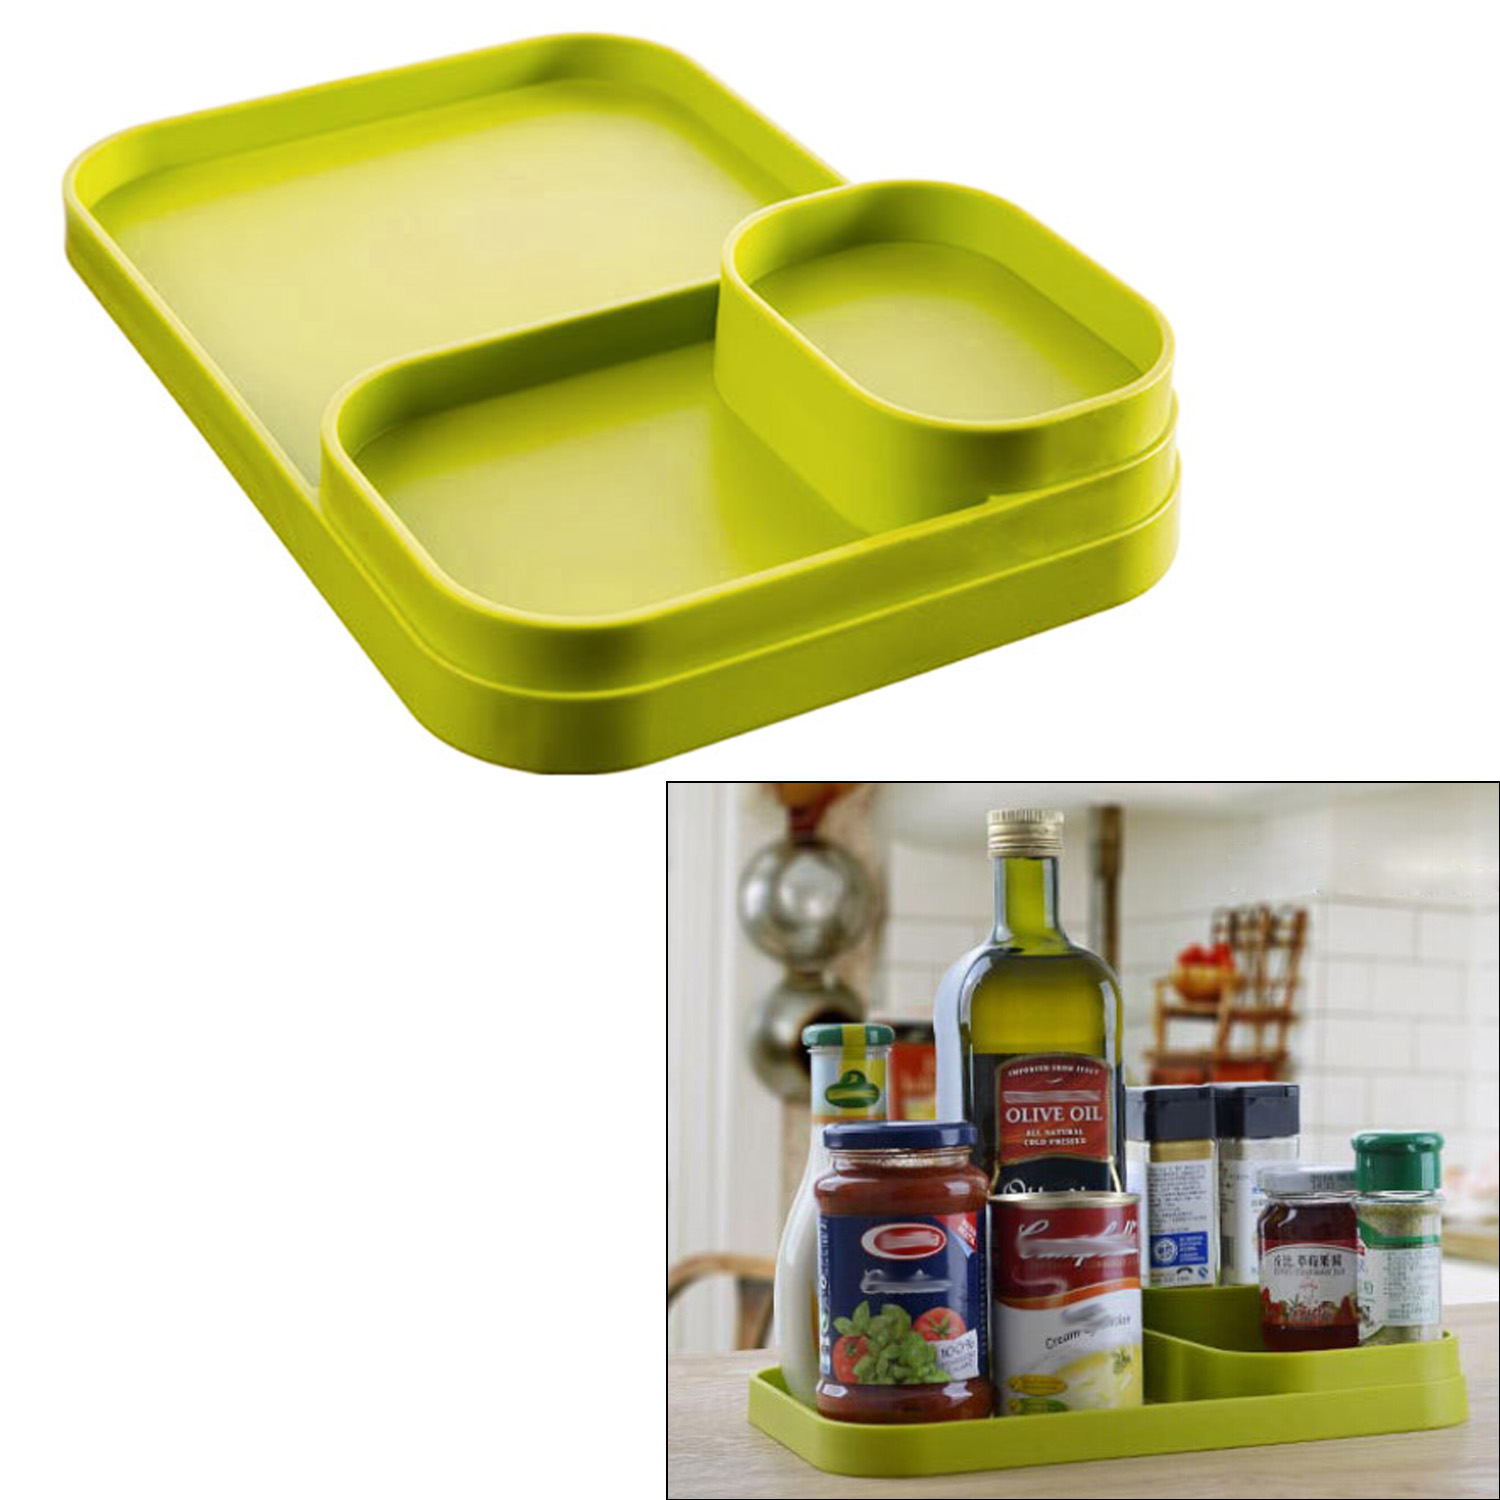 Plastic Multifunctional Multipurpose Box Organizer Kitchen Tabletop Spice Bottle Condiment Tray Slip Seat Kitchen Supplies Green(China (Mainland))